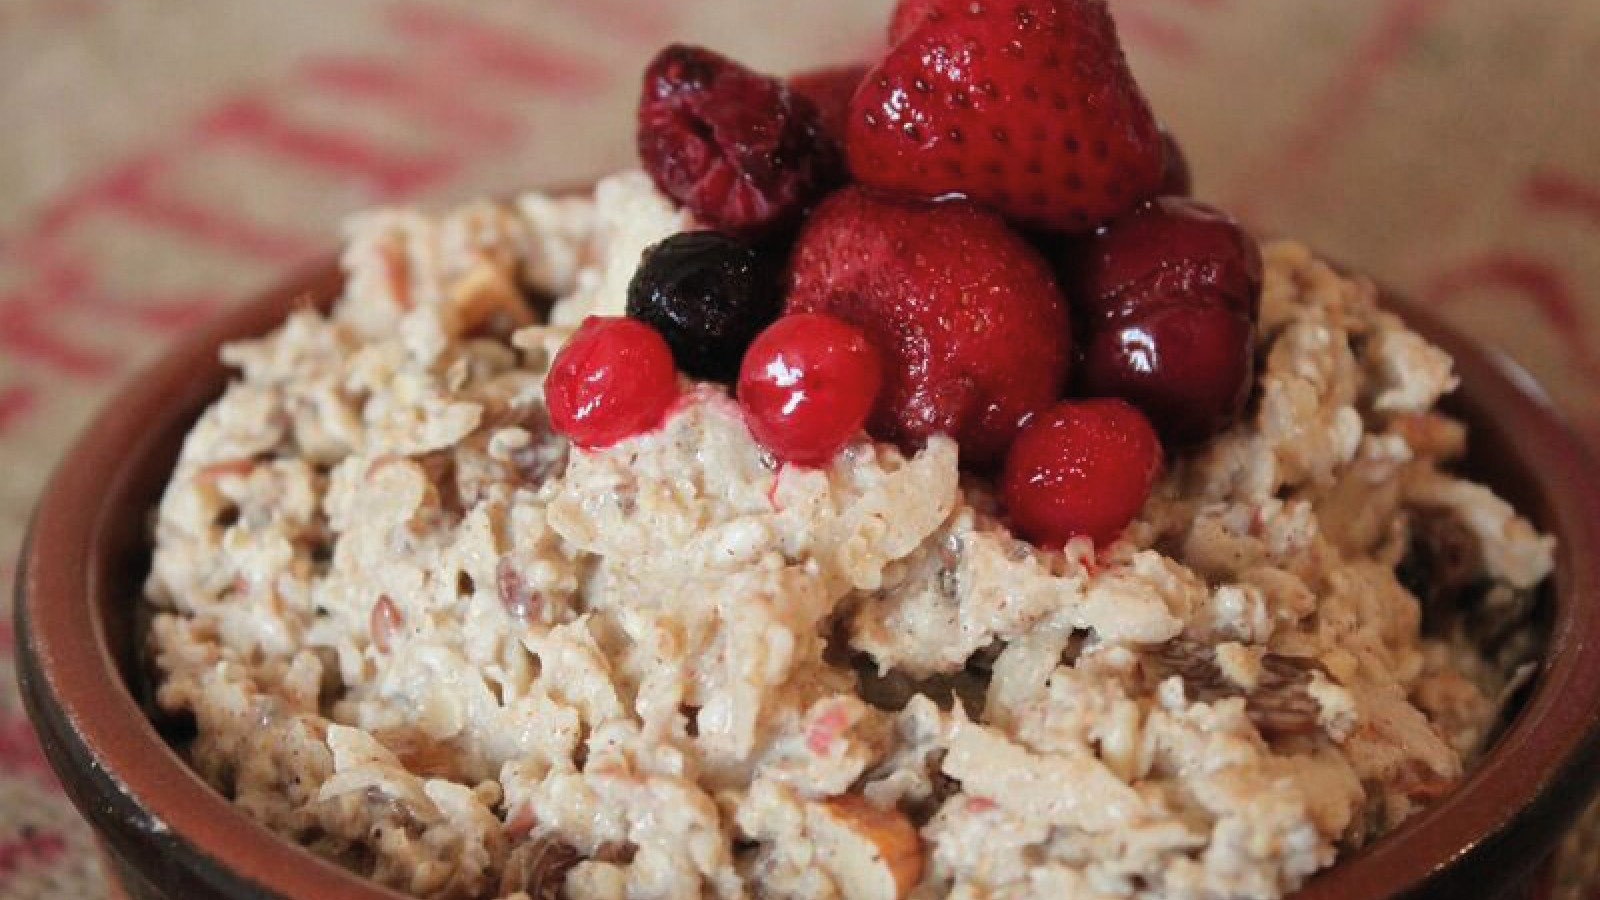 Bircher muesli is the perfect way to start the day if you've got riding planned